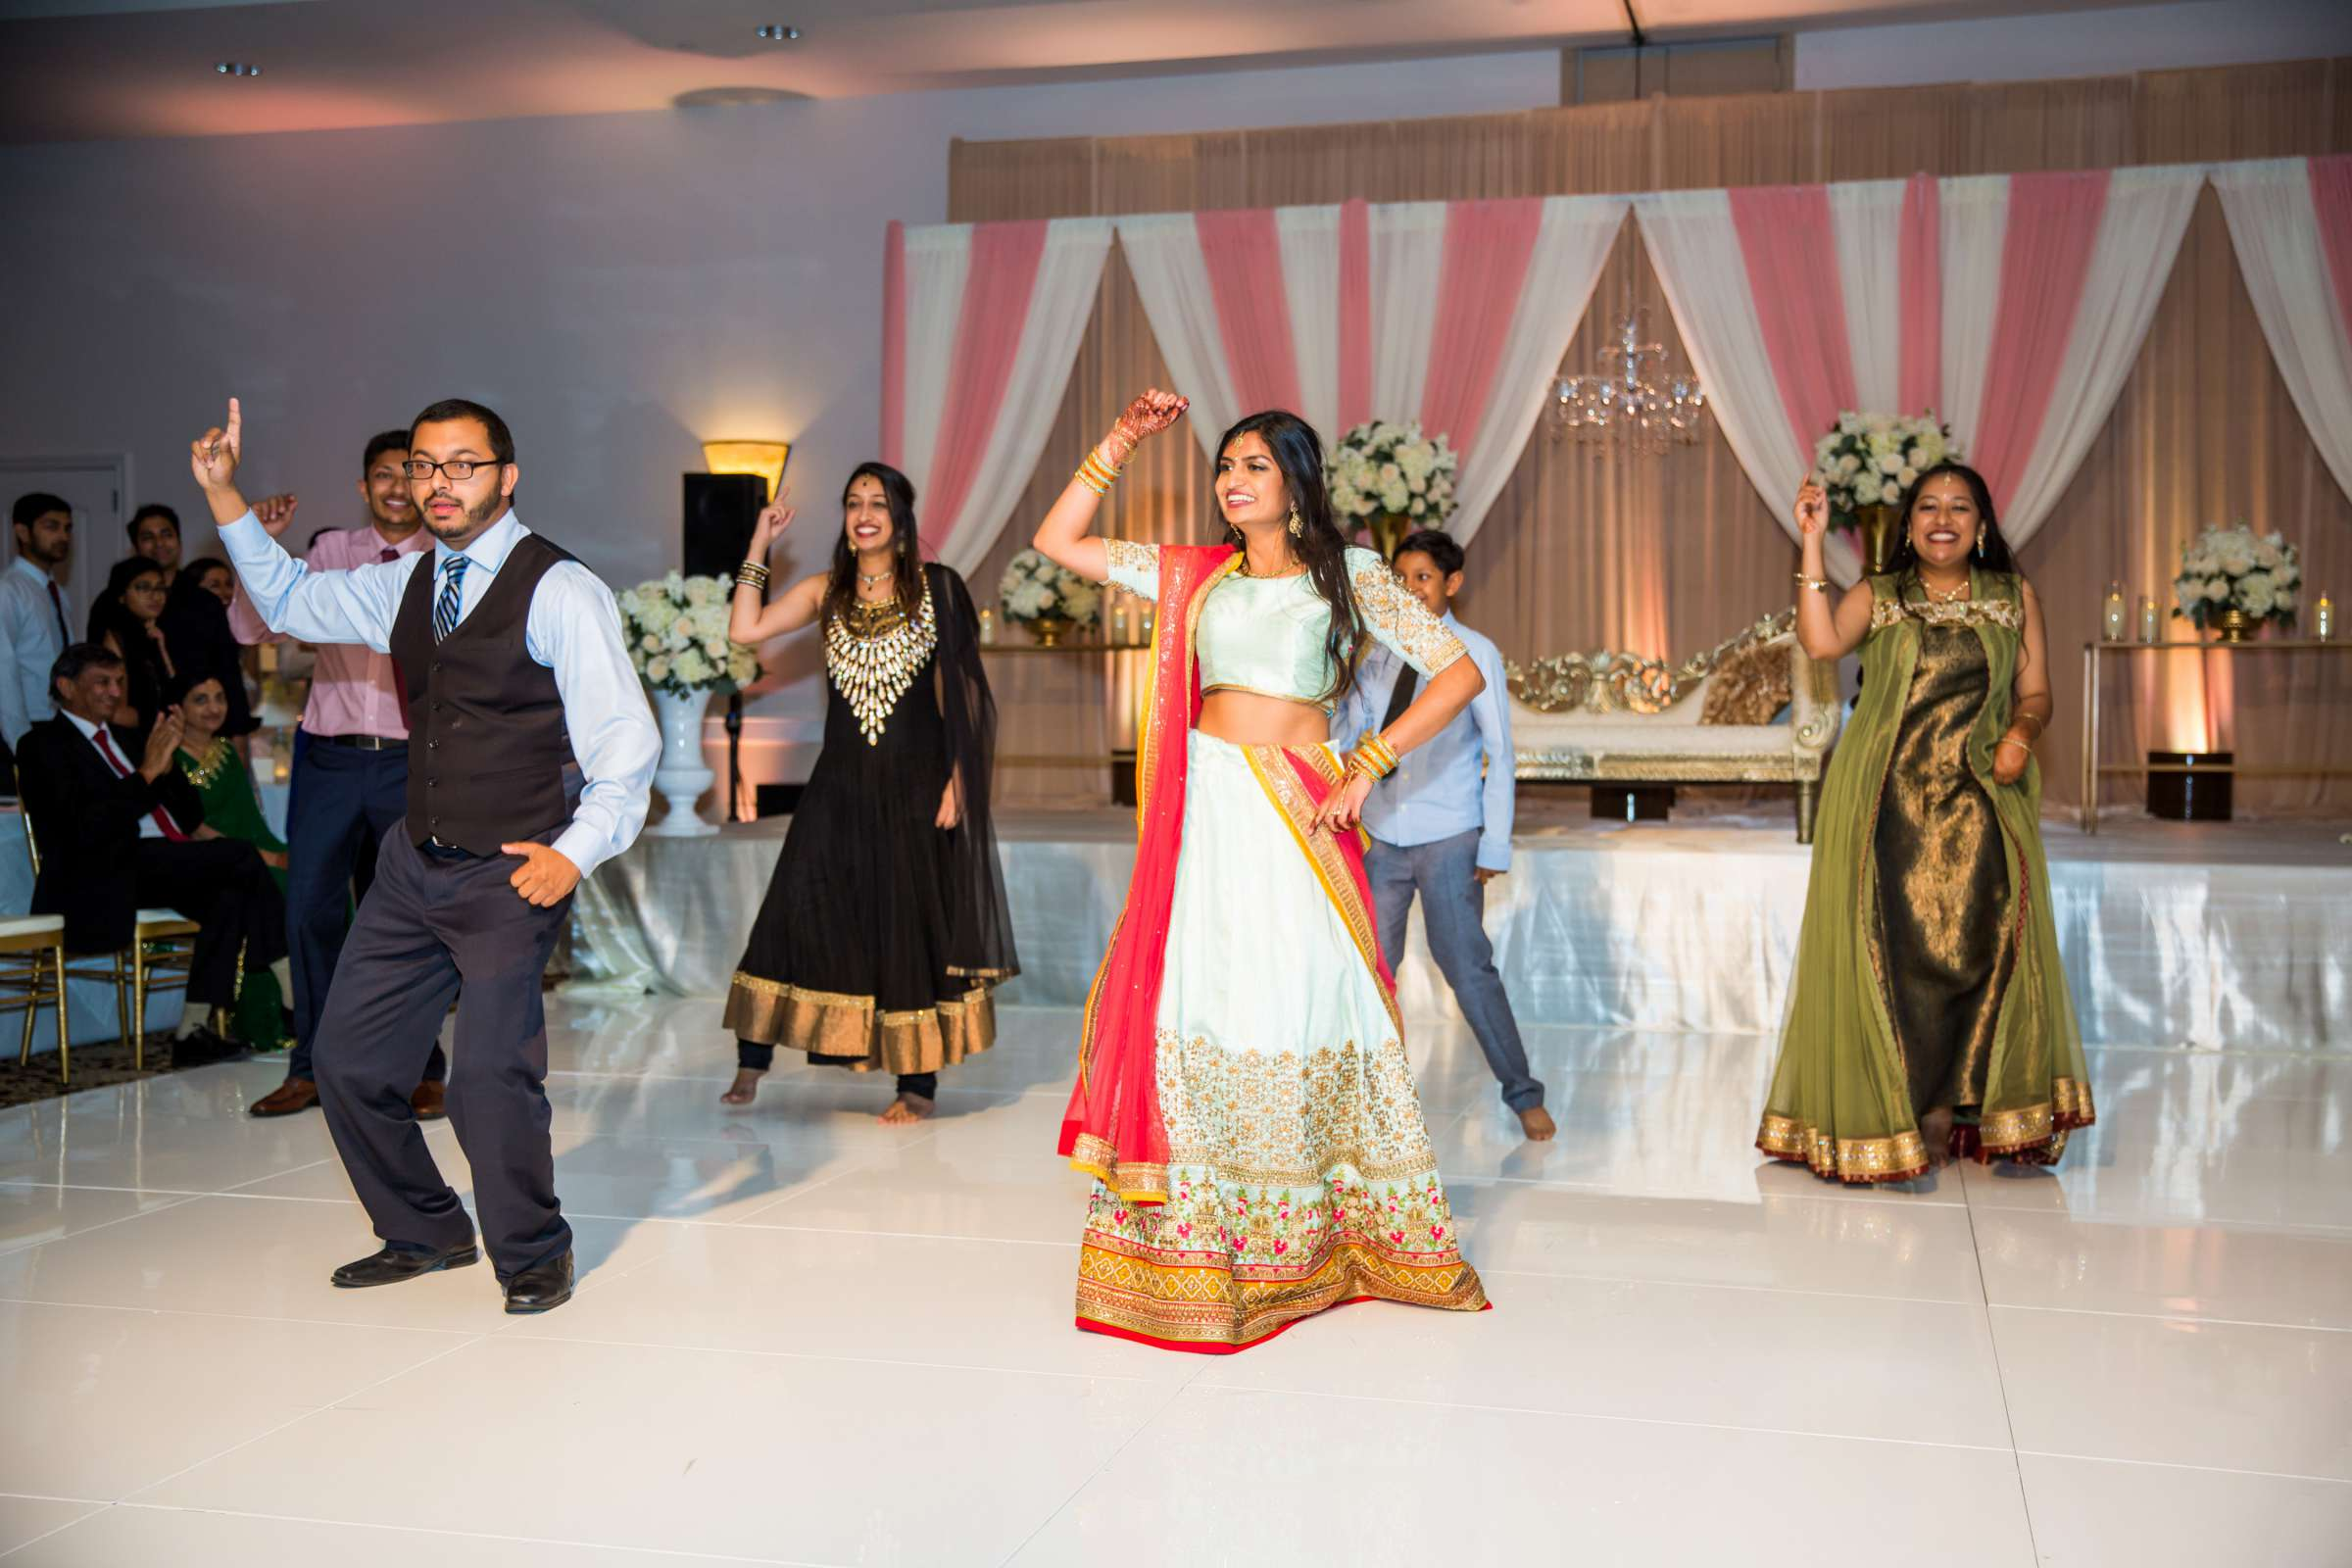 The Westin Carlsbad Resort and Spa Wedding coordinated by Shilpa Patel Events, Ami and Amit Wedding Photo #237 by True Photography